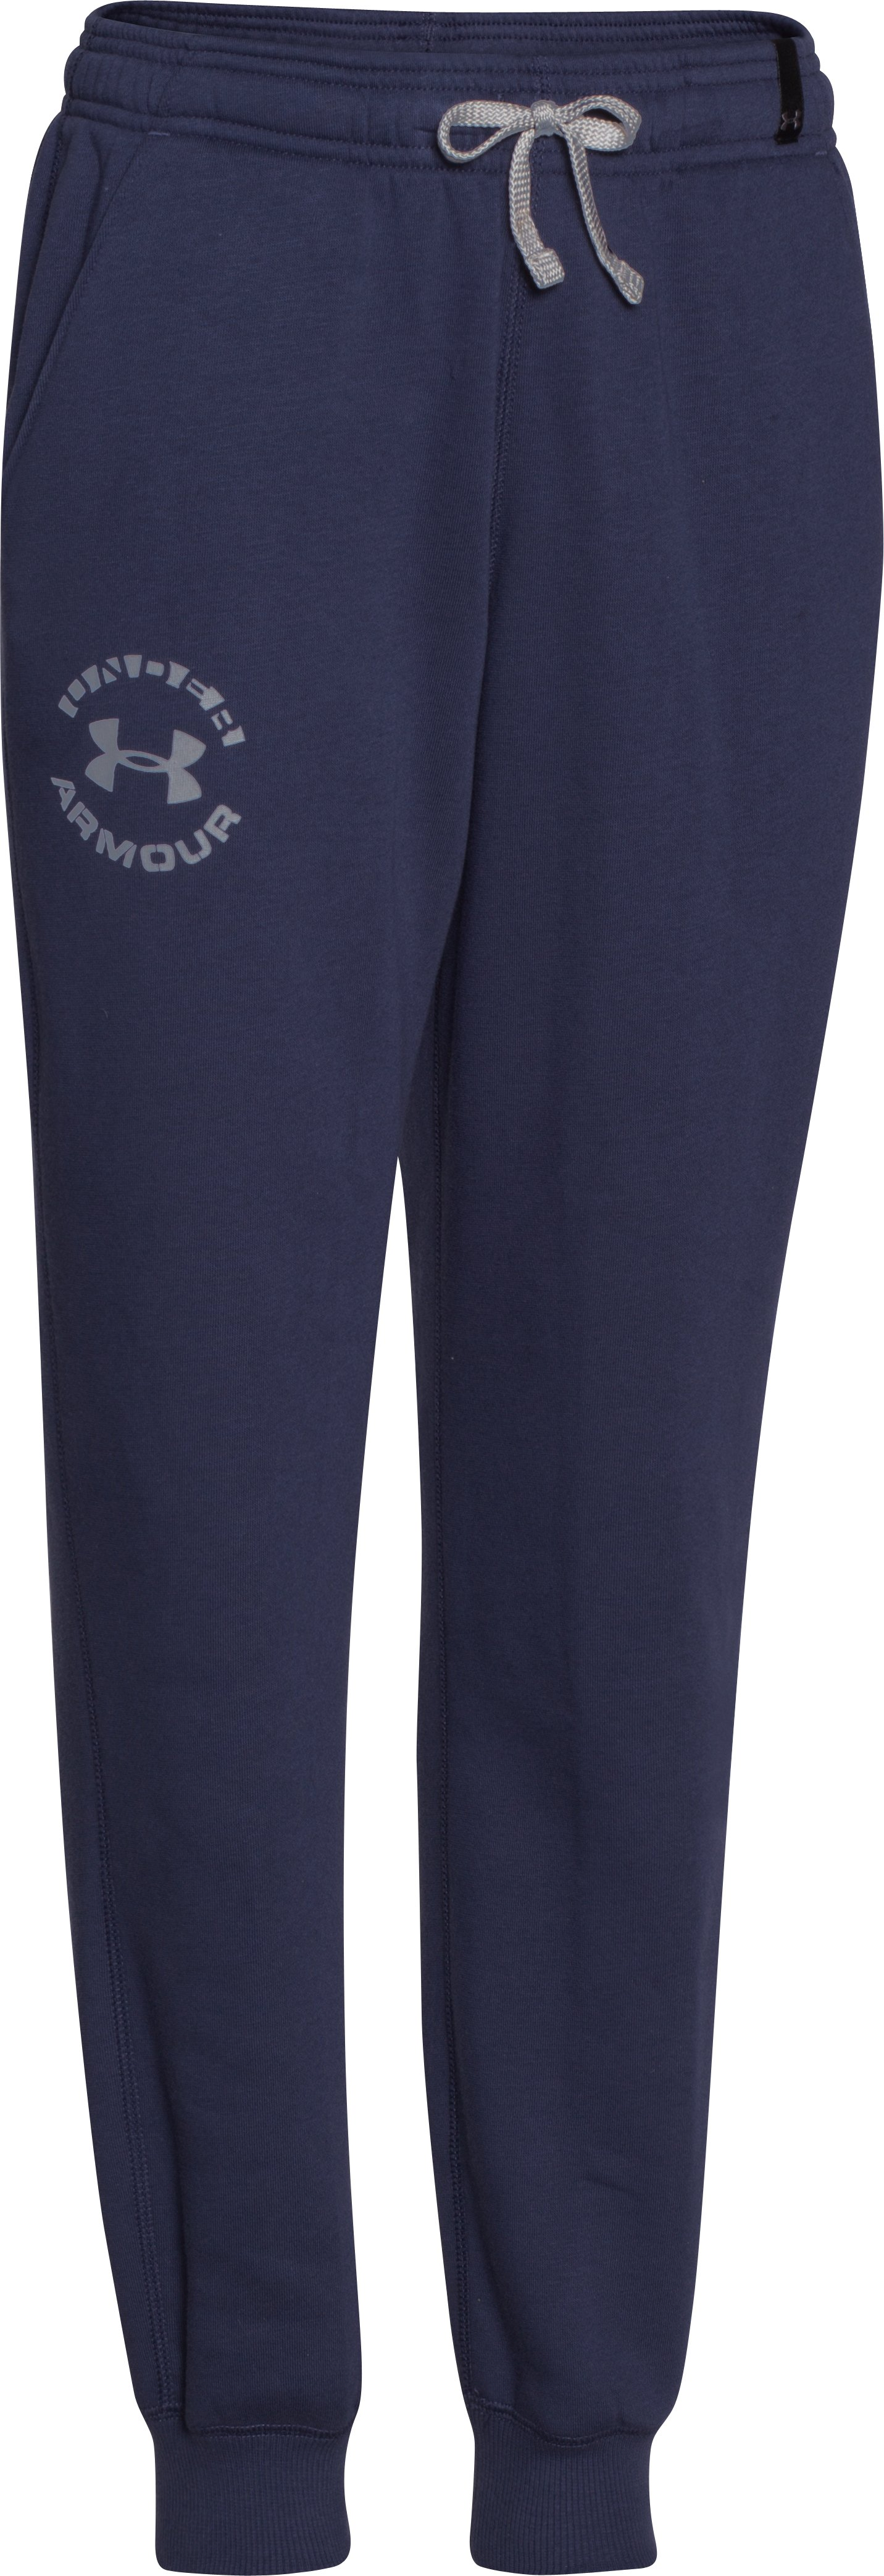 Boys' UA Rival Fleece Jogger Pants, BLUE KNIGHT